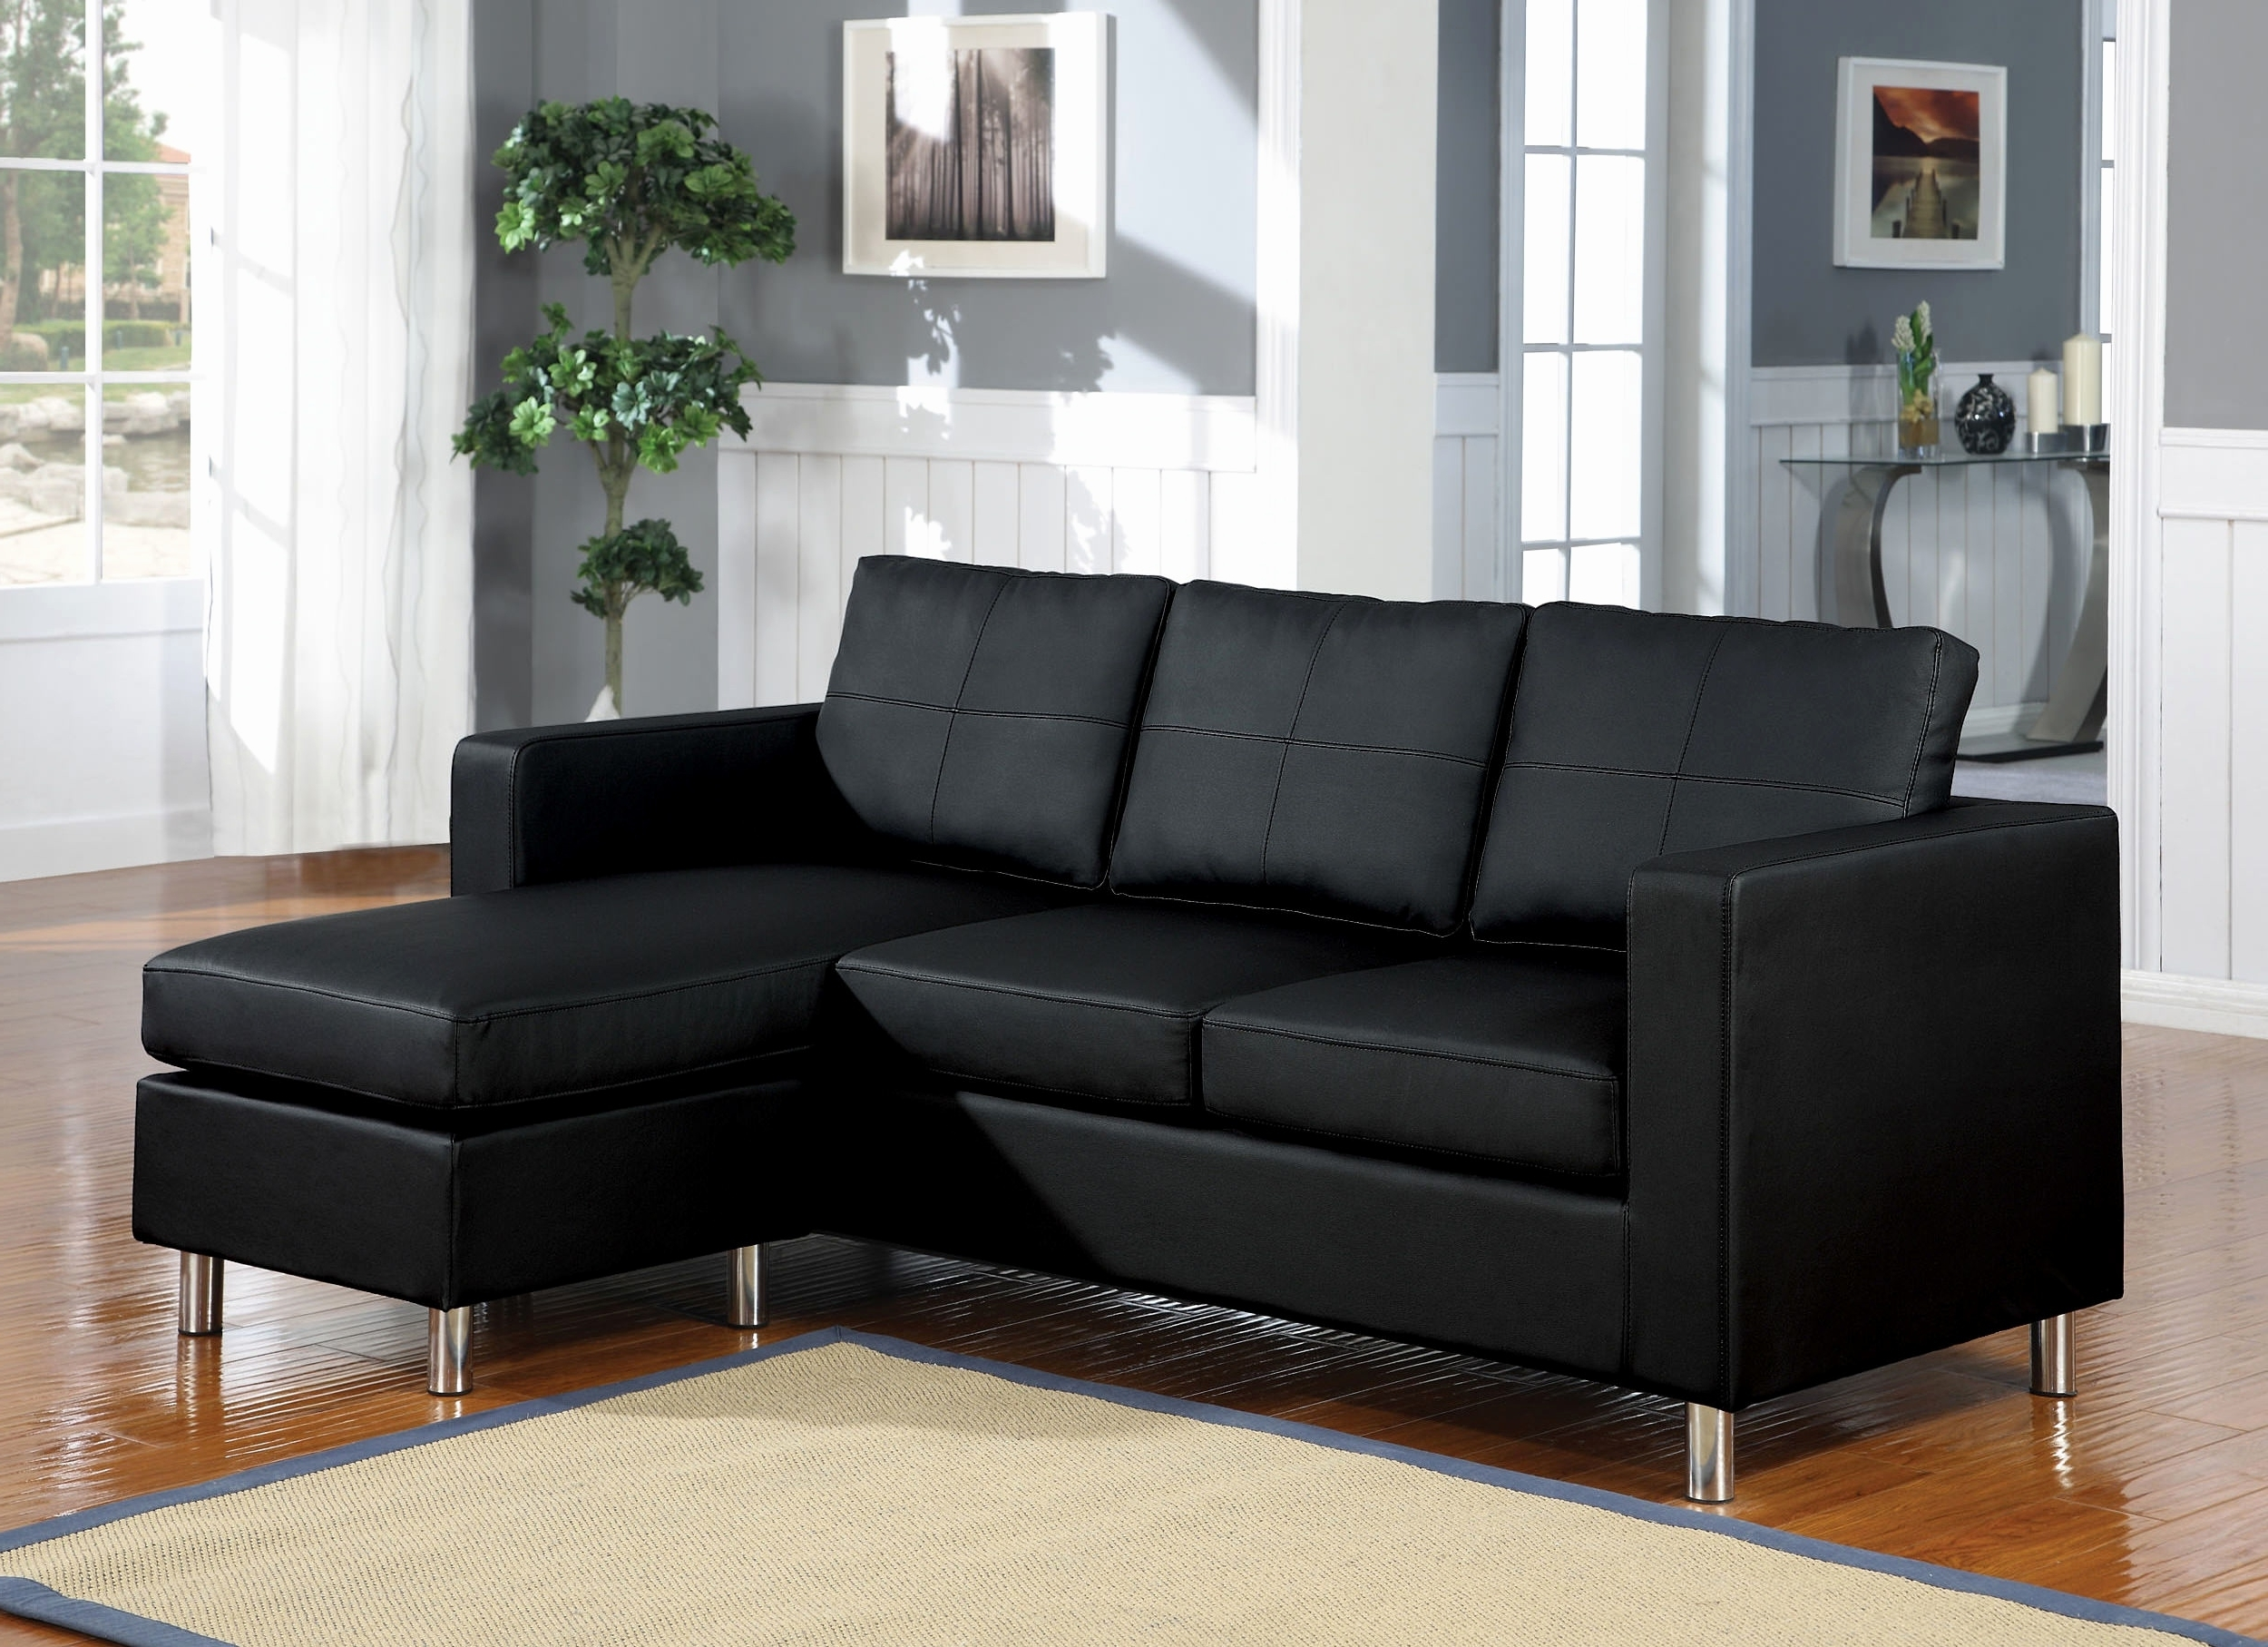 Tiny Sofas With Regard To Well Liked Small Space Sectional Sofa Elegant Sectional Sofa Design Awesome (View 11 of 15)